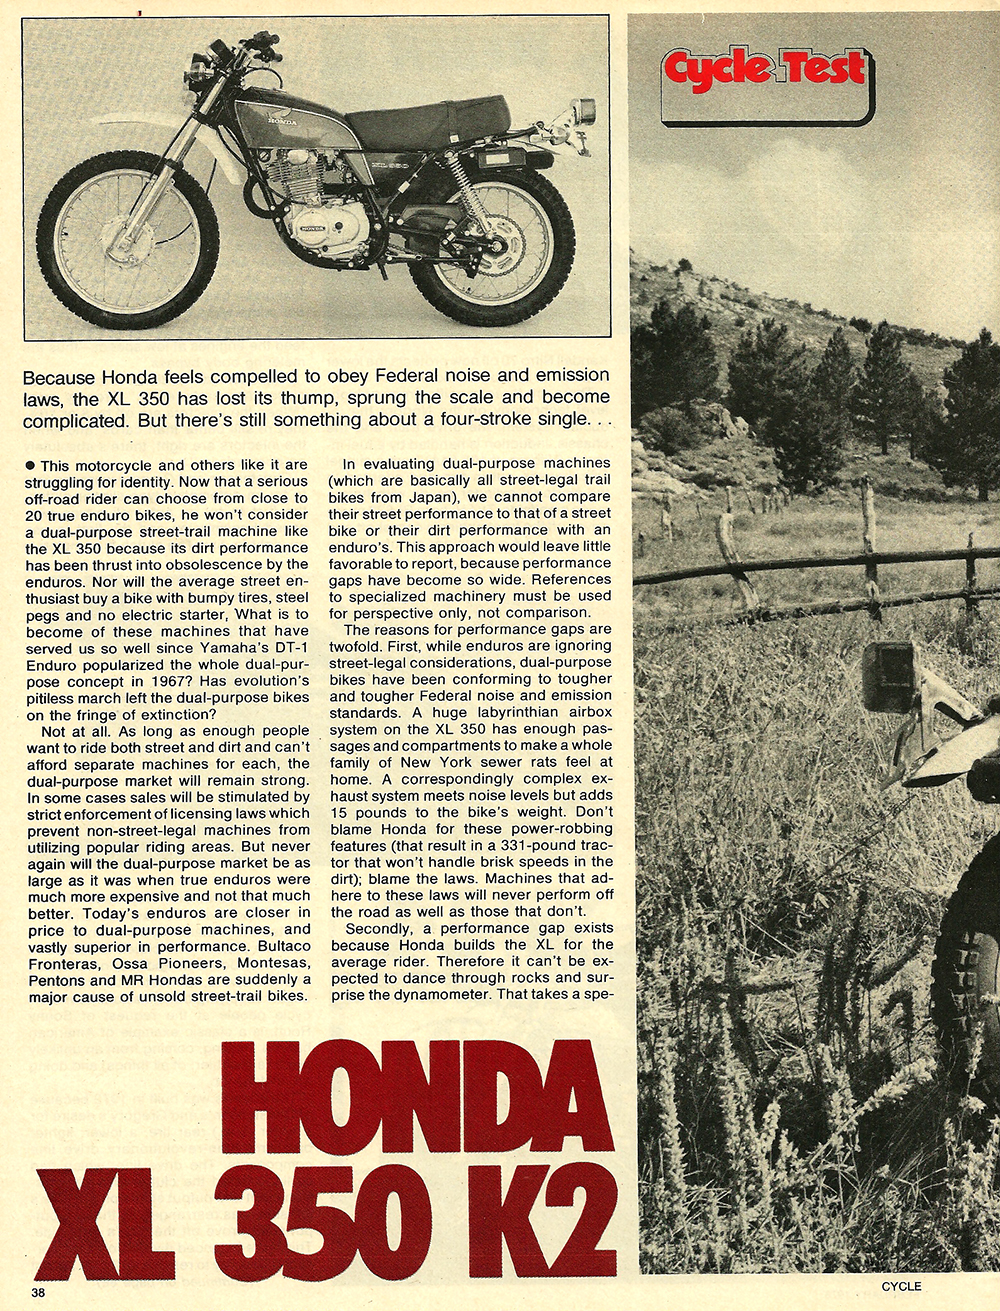 1976 Honda XL 350 K2 road test 1.jpg